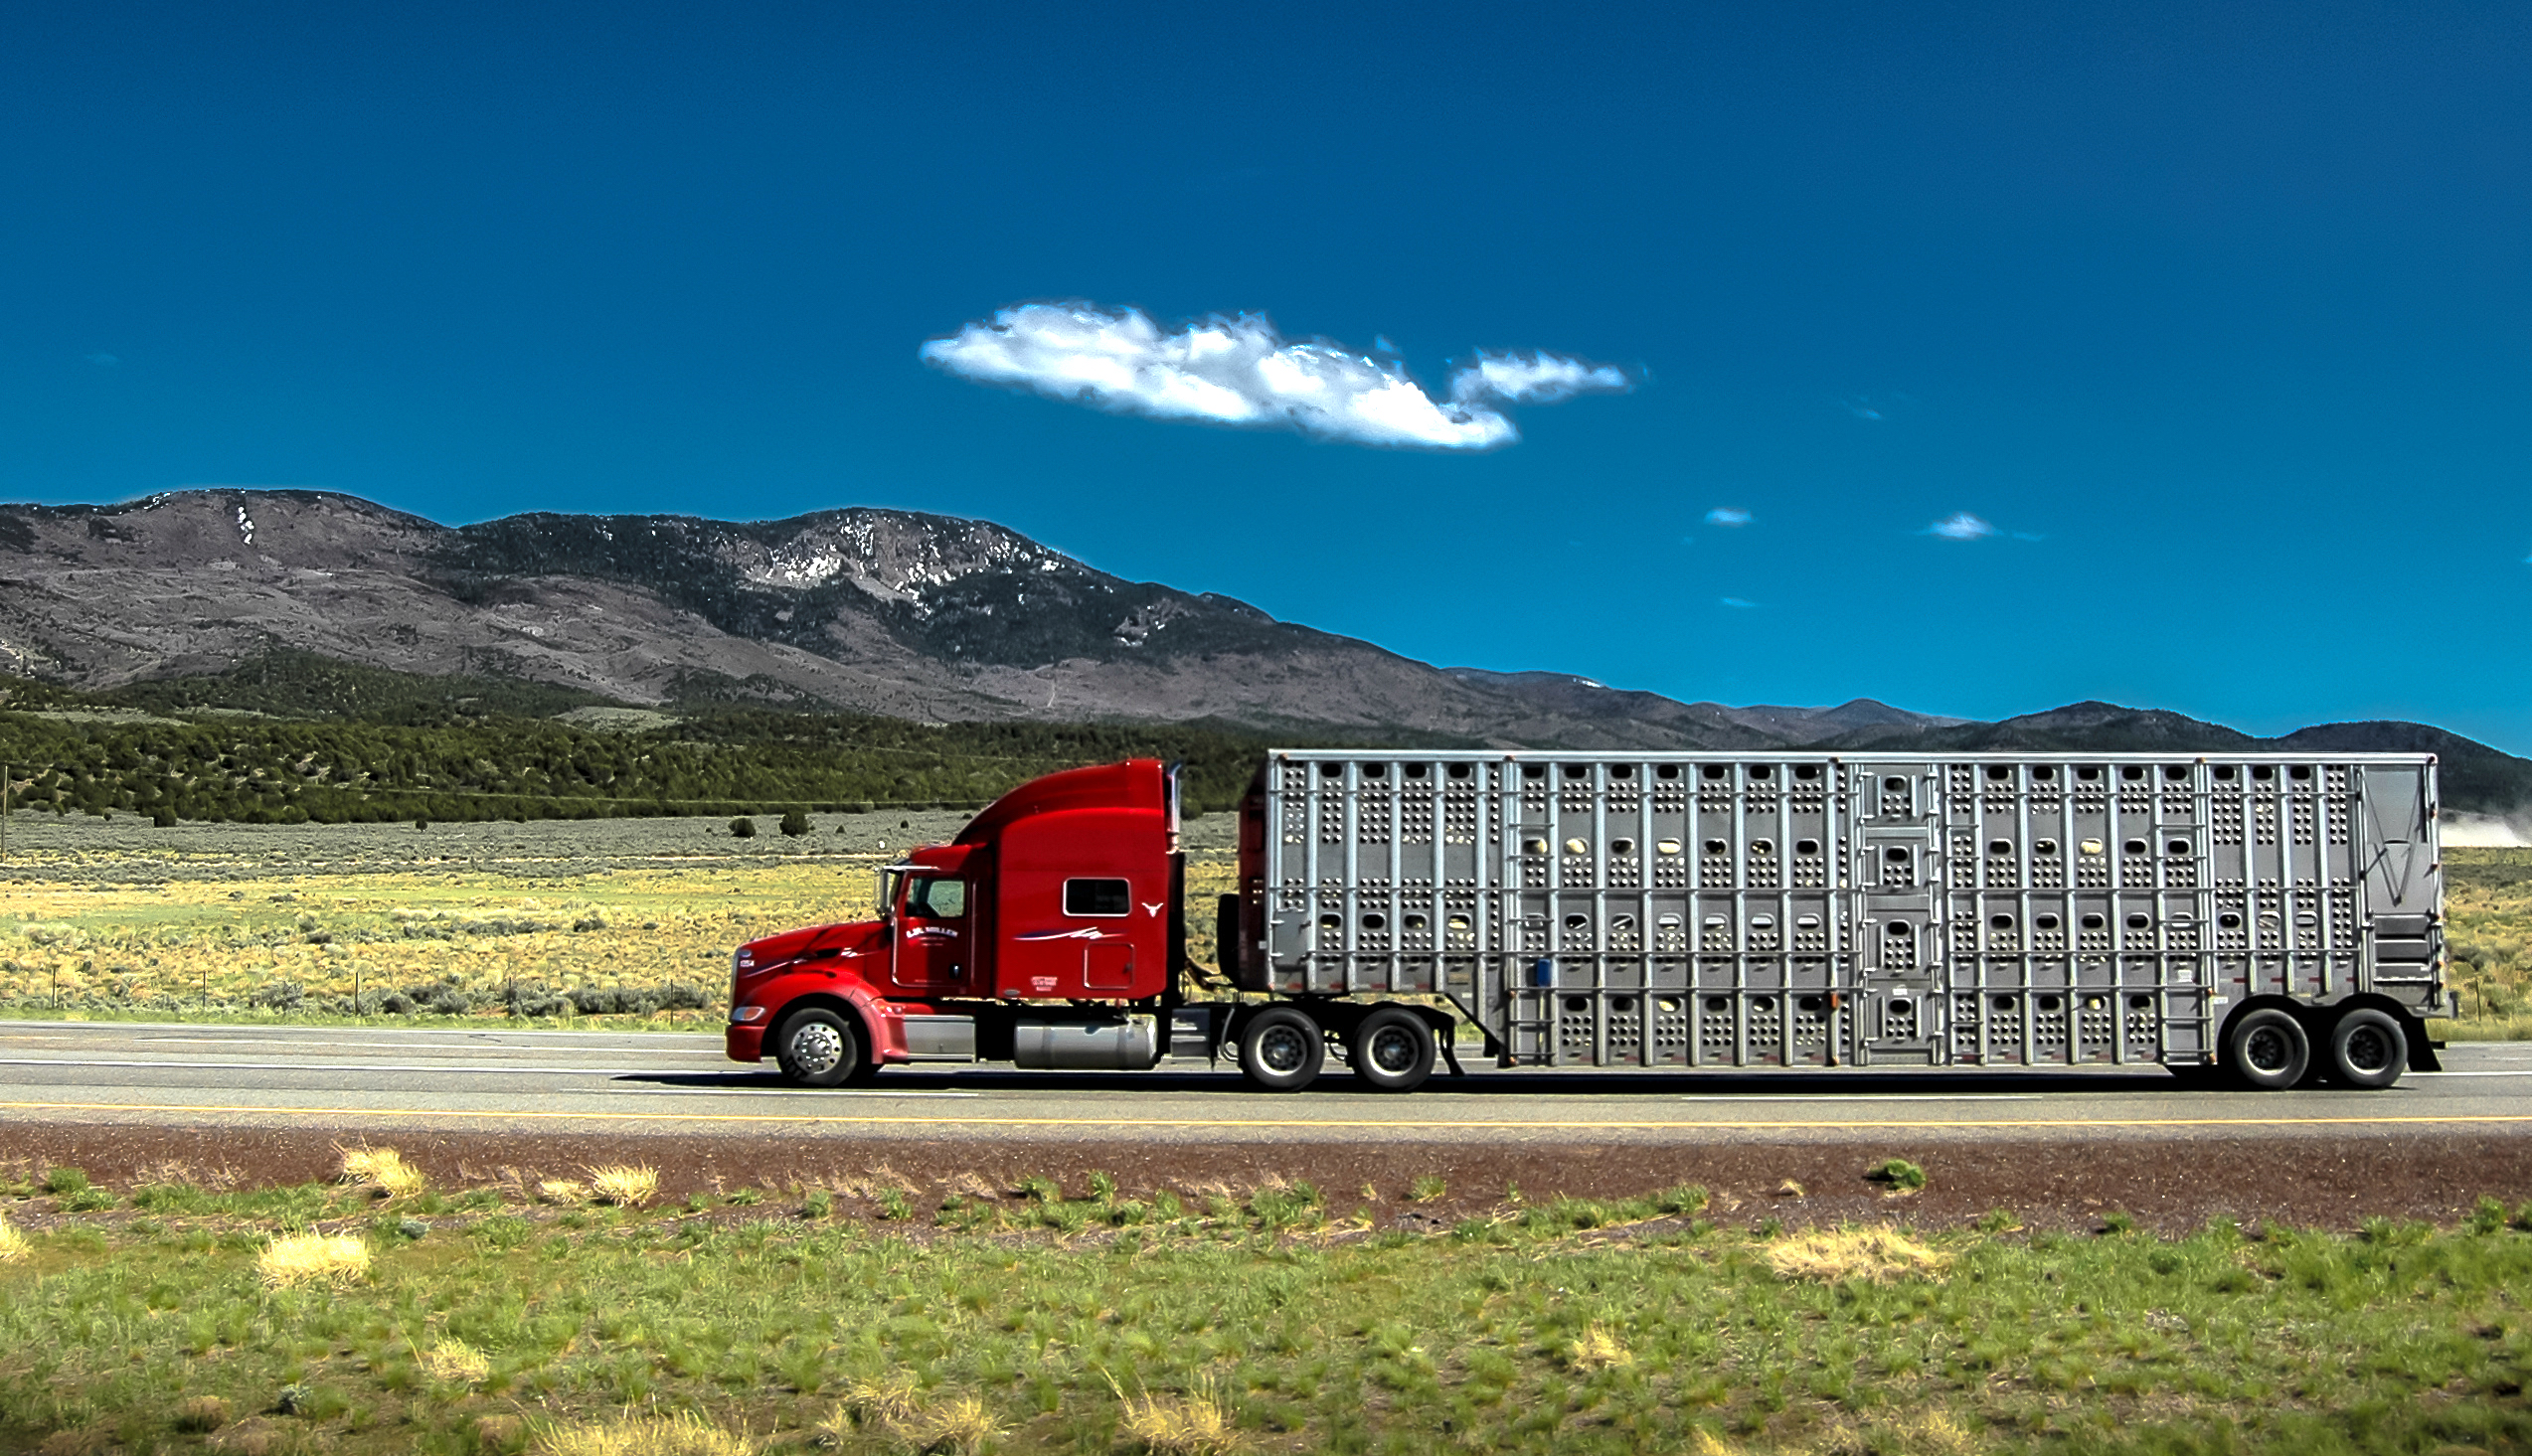 A truck transports live cattle in illustrate an article about the impacts of the JBS cyberattack on livestock haulers